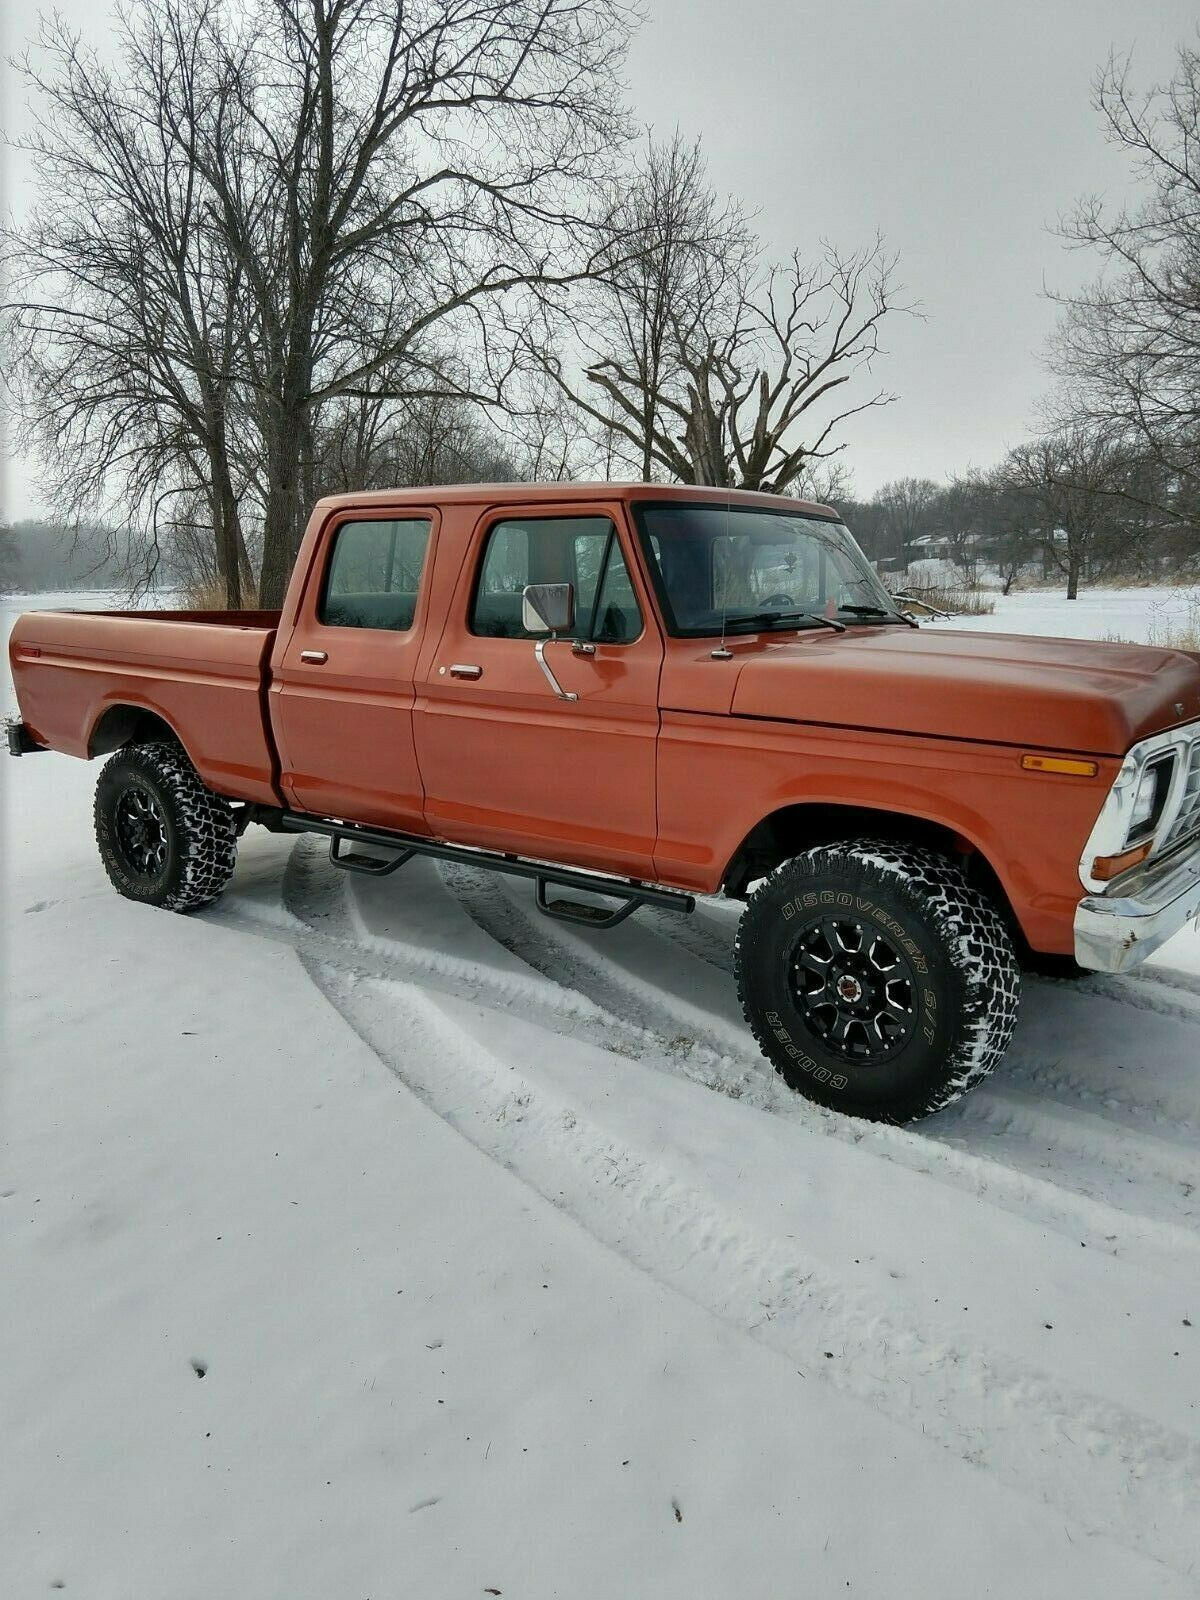 1979 Ford F250 For Sale : F-250, Short, Finds